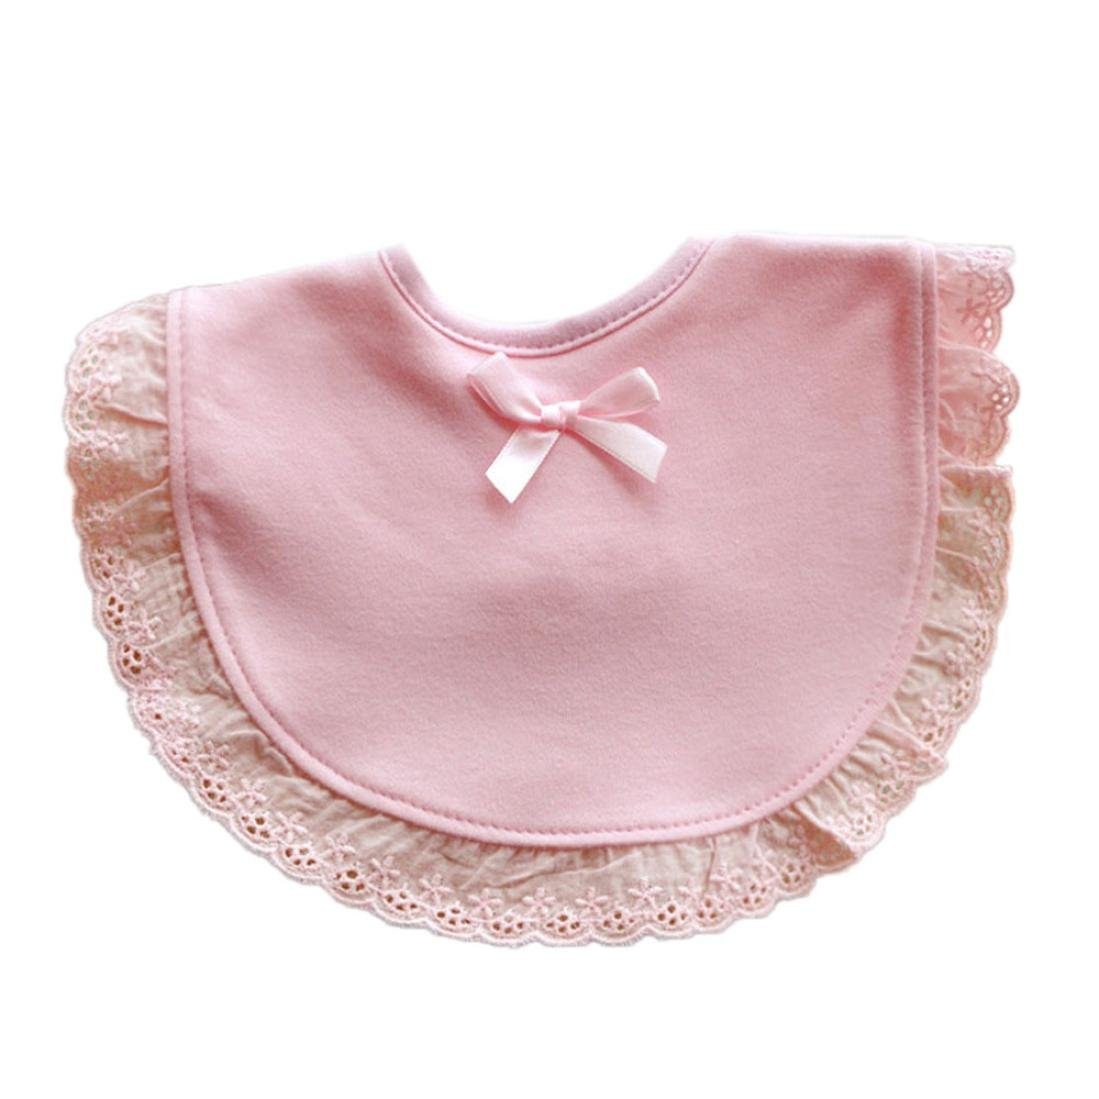 Festwolf Newborn Bibs Feeding Bowknot Lace Cotton Saliva Towel Pink White NO-589